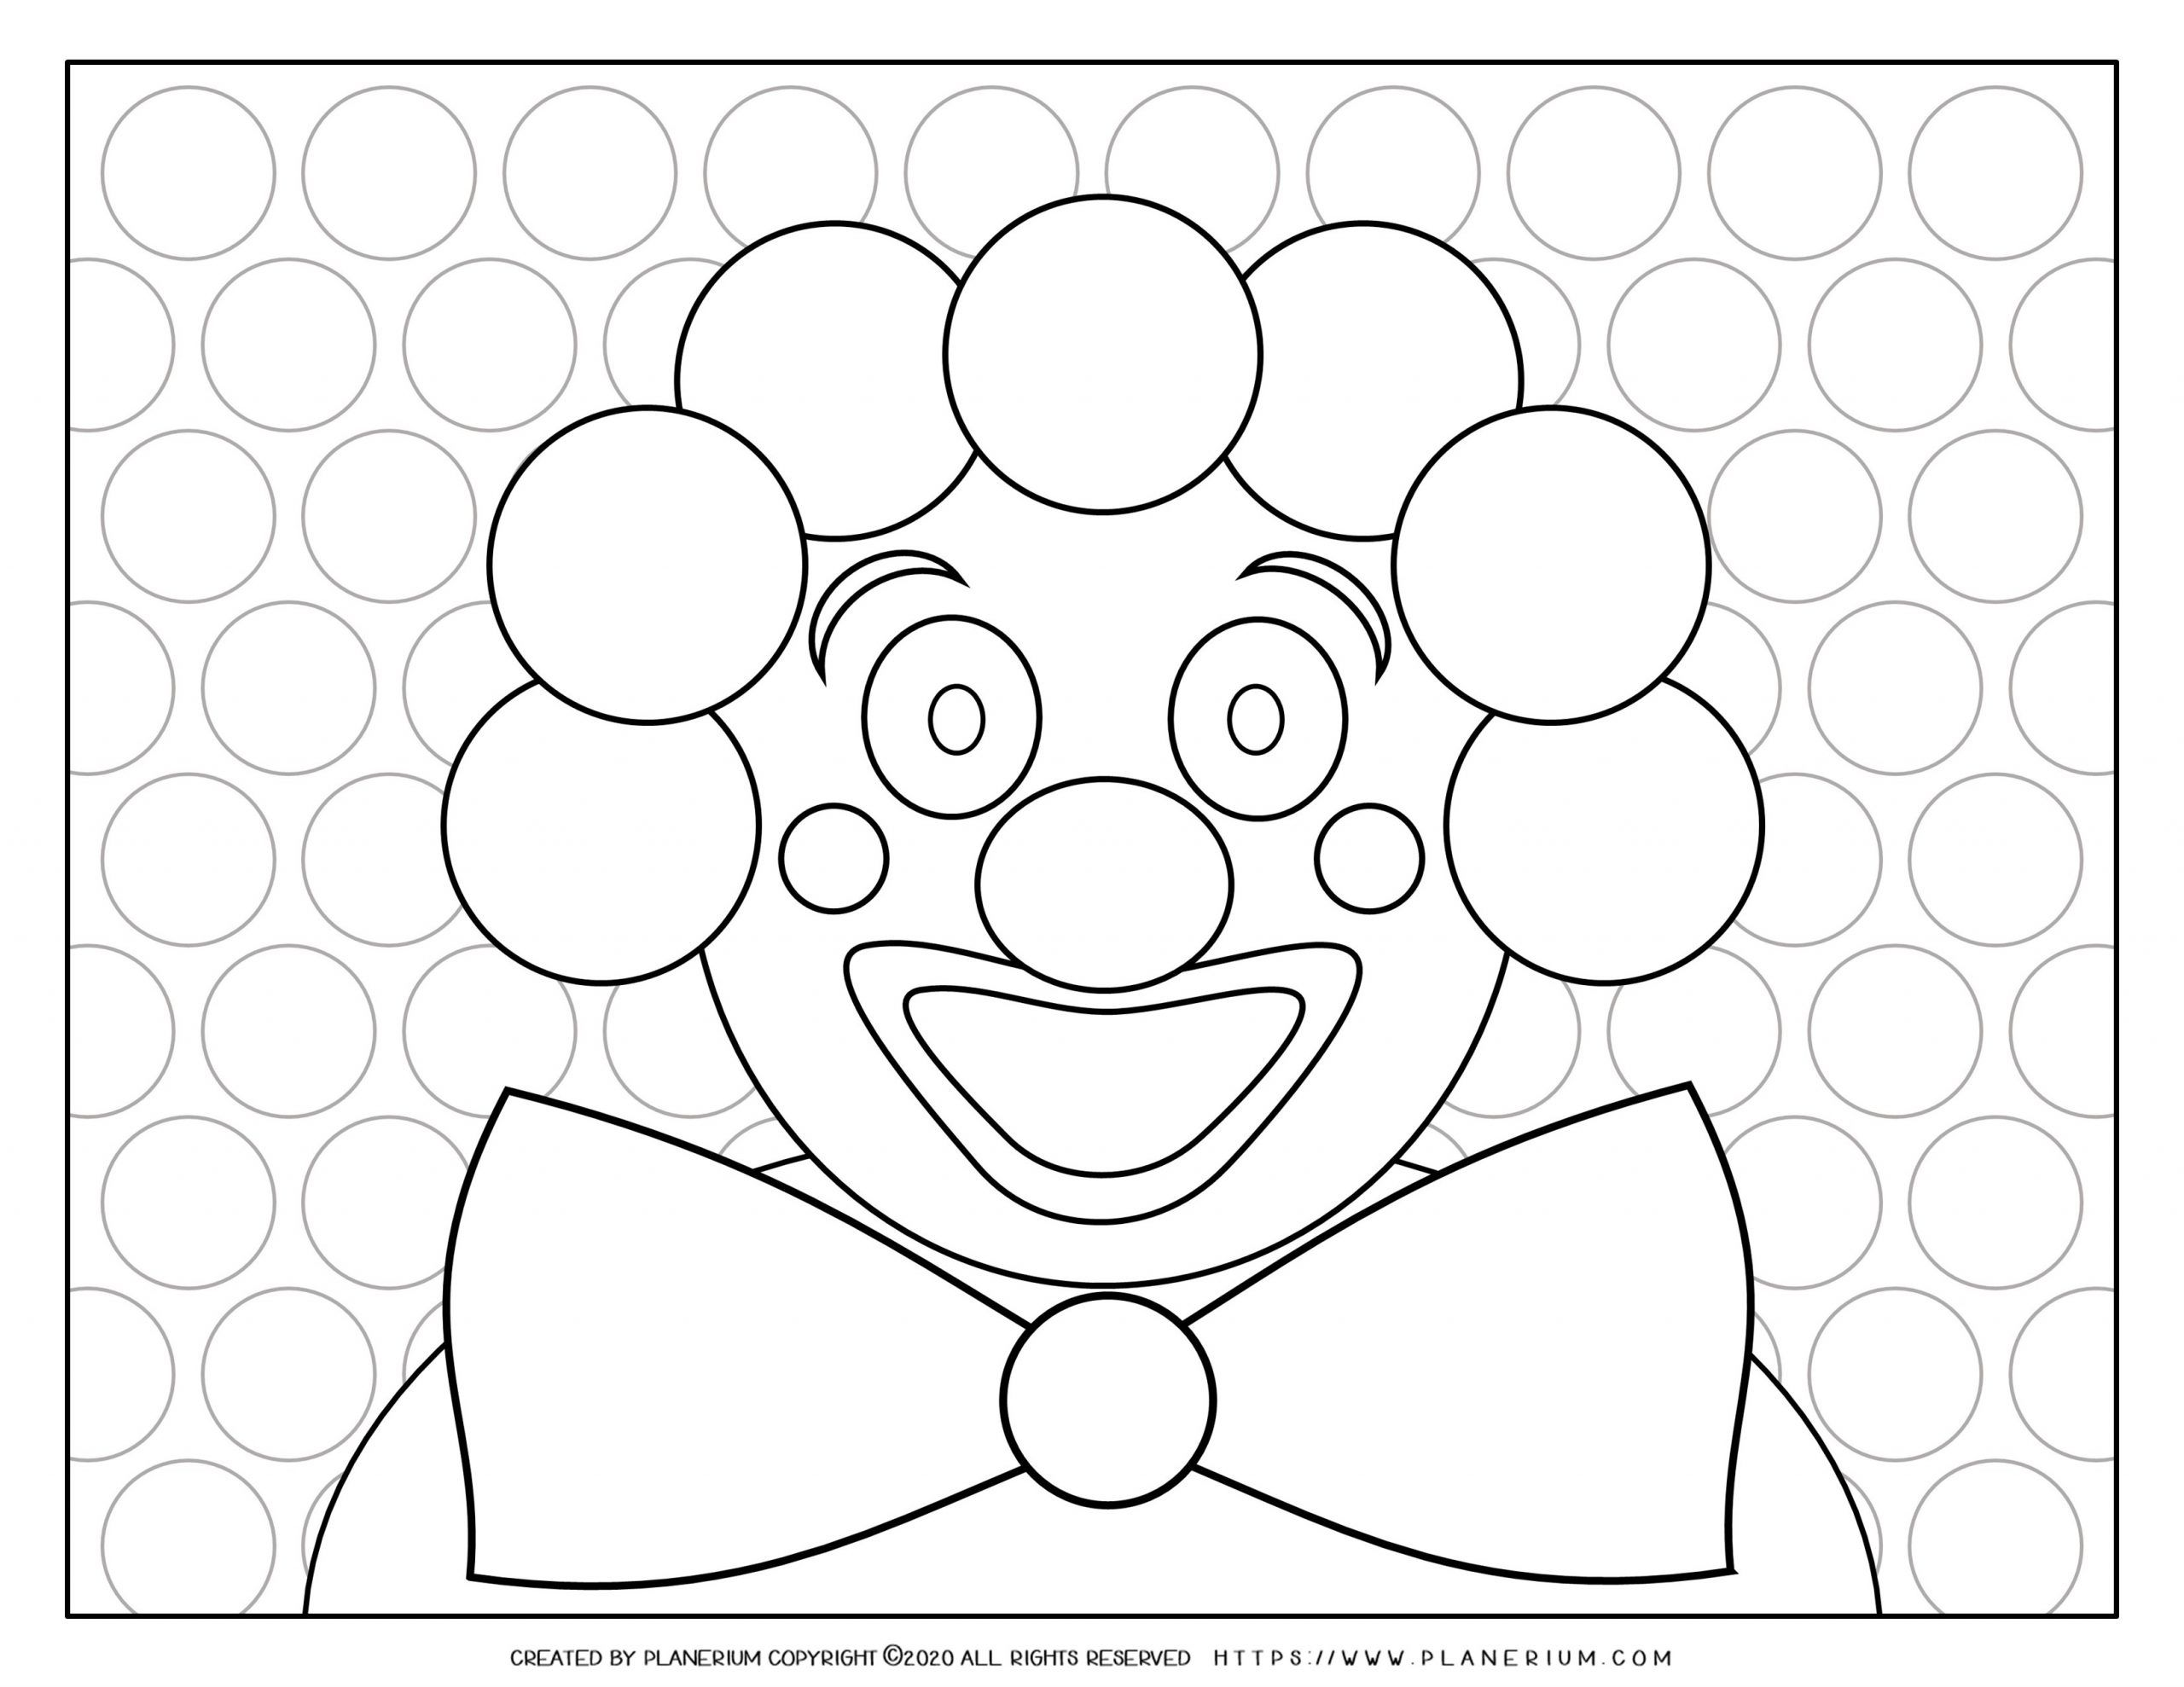 Carnival - Coloring Page Worksheet - Smiley Clown | Planerium